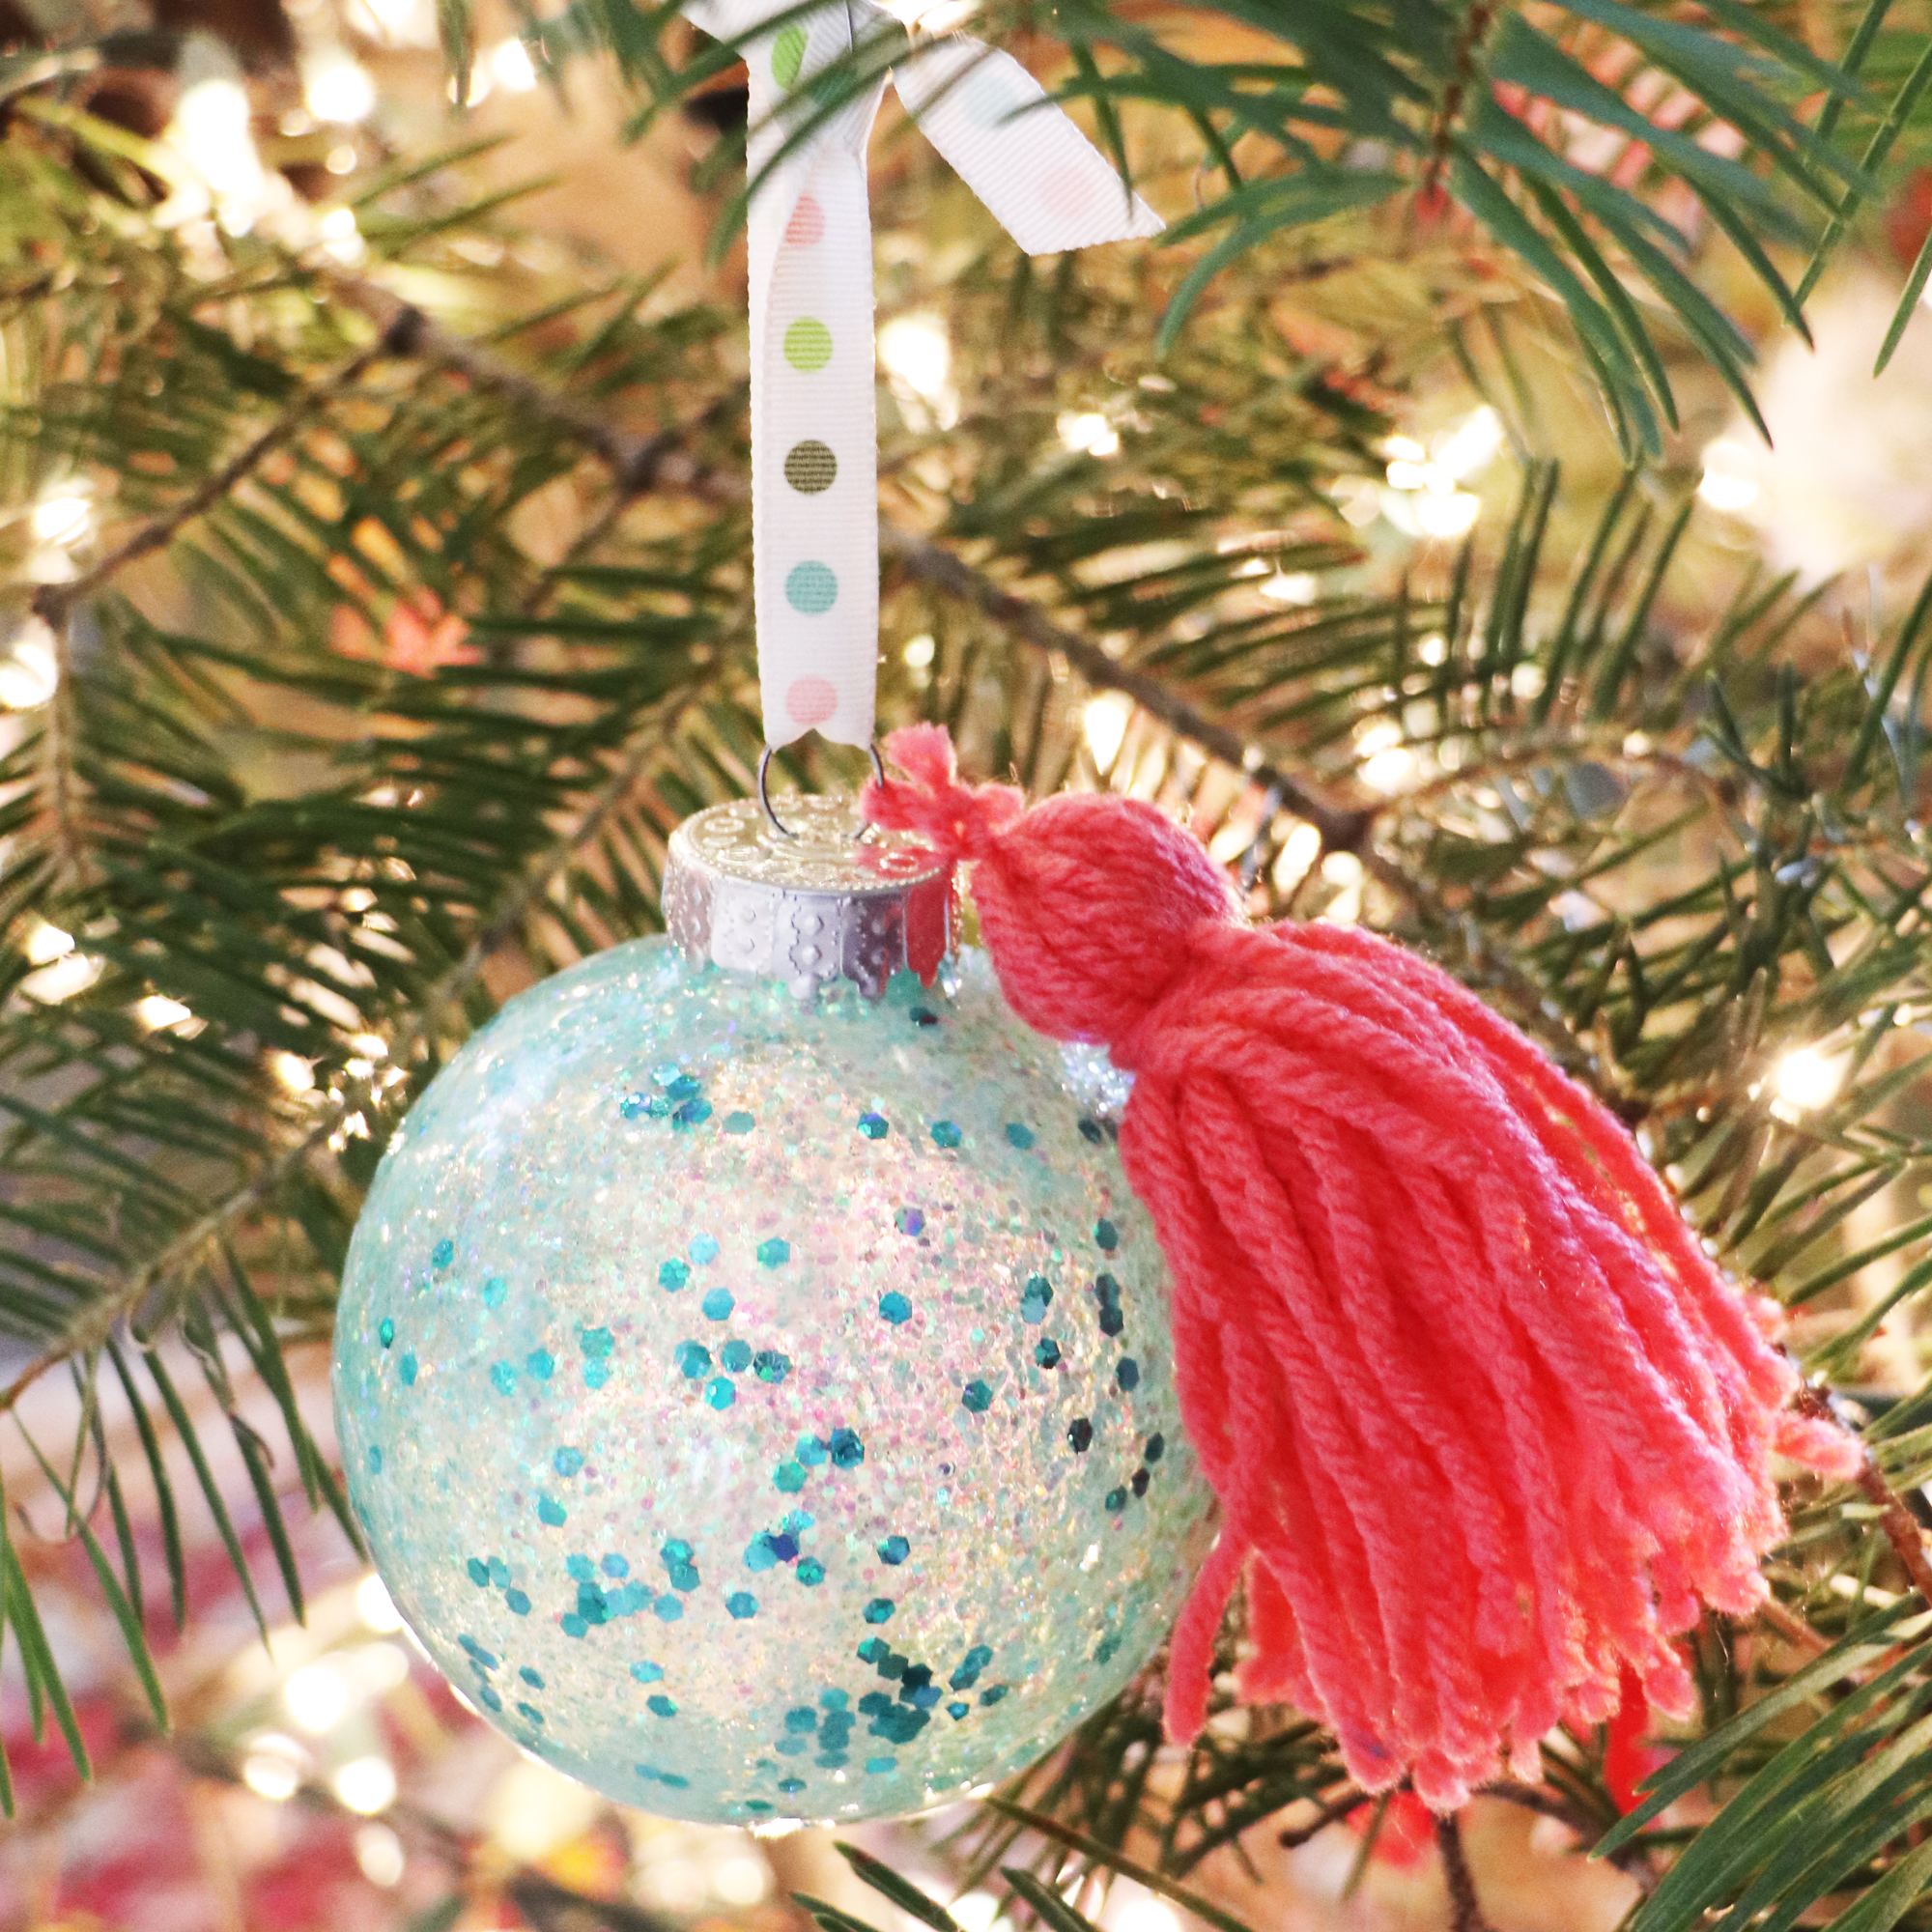 DIY Ornaments with the Spin It Ornament Arm by Laura Silva for We R Memory Keepers